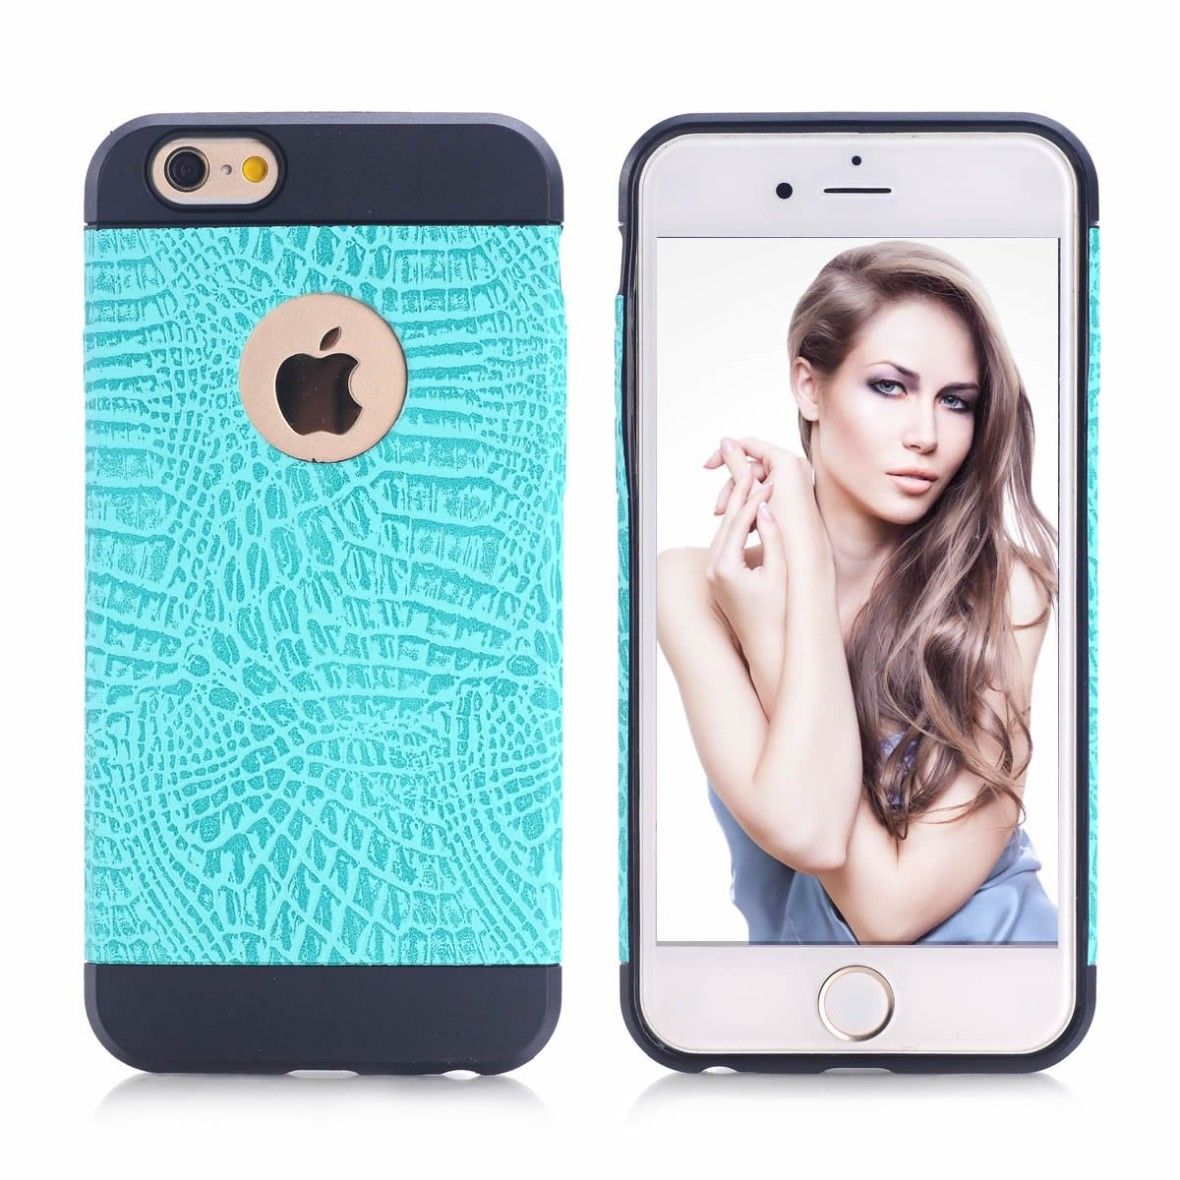 iPhone 6 case - YAKAON iPhone 6 (4.7inch) Crocodile Pattern Protective Case, TPU Silicone Case, Protective Skin Cover Case for iPhone 6 4.7 inch blue